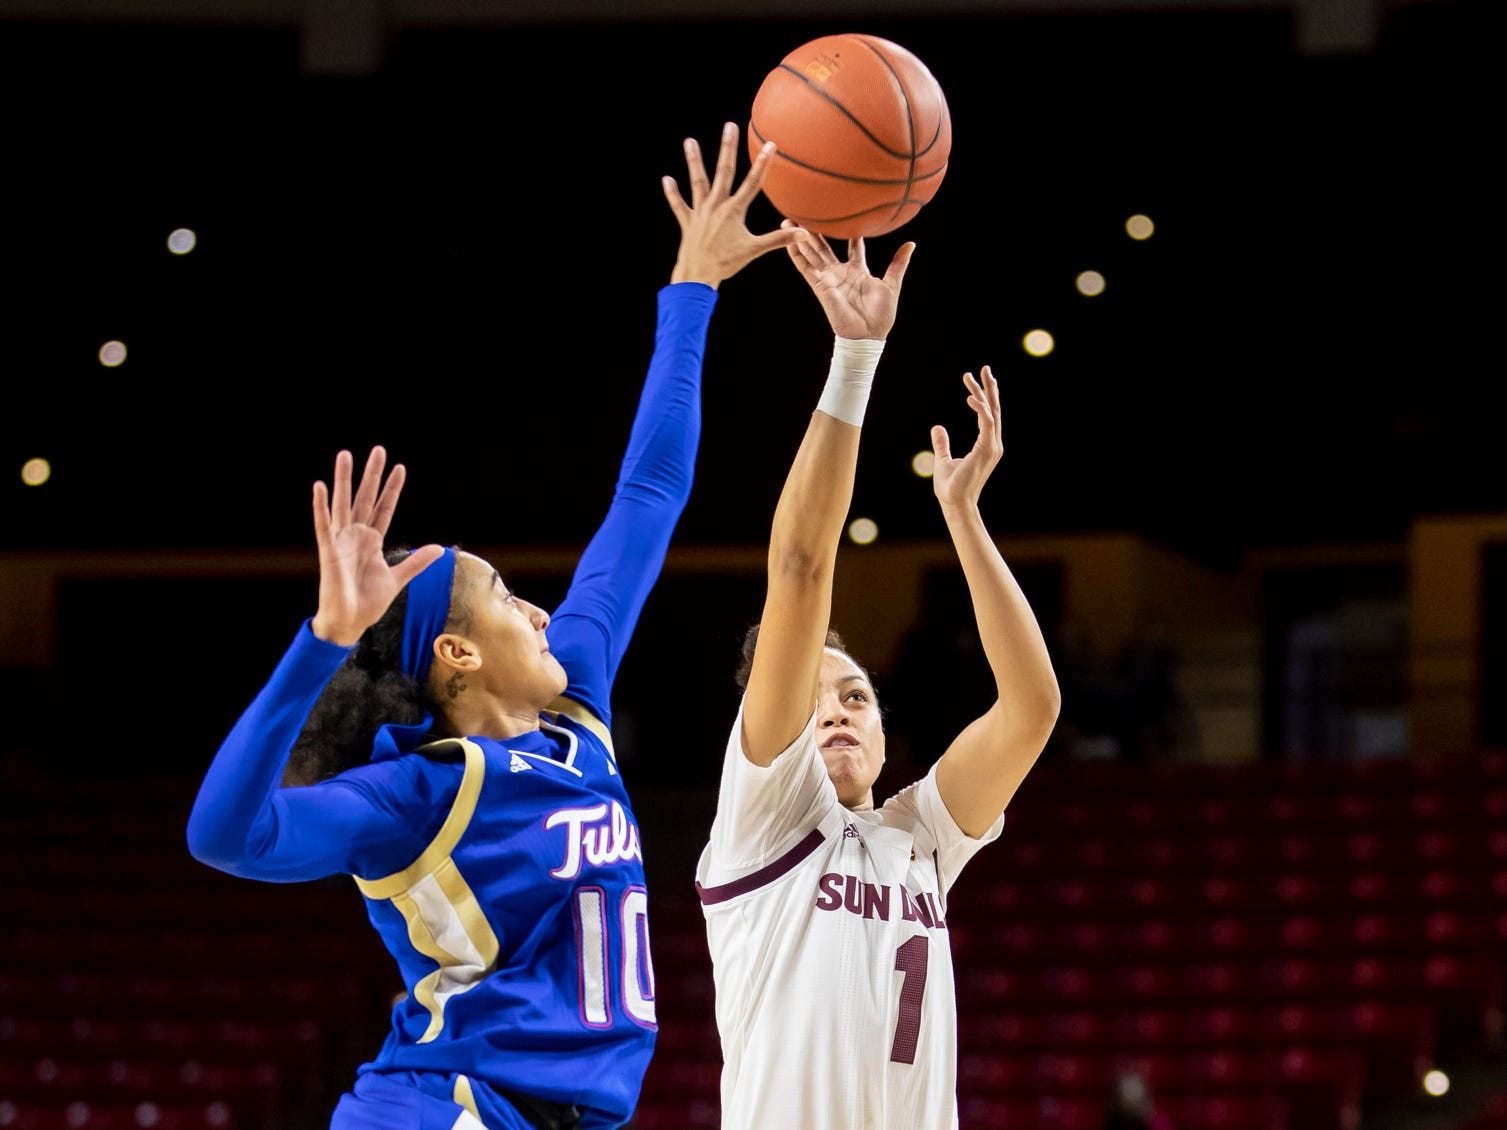 Guard Reili Richardson (1) of the Arizona State Sun Devils shoots against guard Alexis Gaulden (10) of Tulsa Golden Hurricane at Wells Fargo Arena on Sunday, December 2, 2018 in Tempe, Arizona.